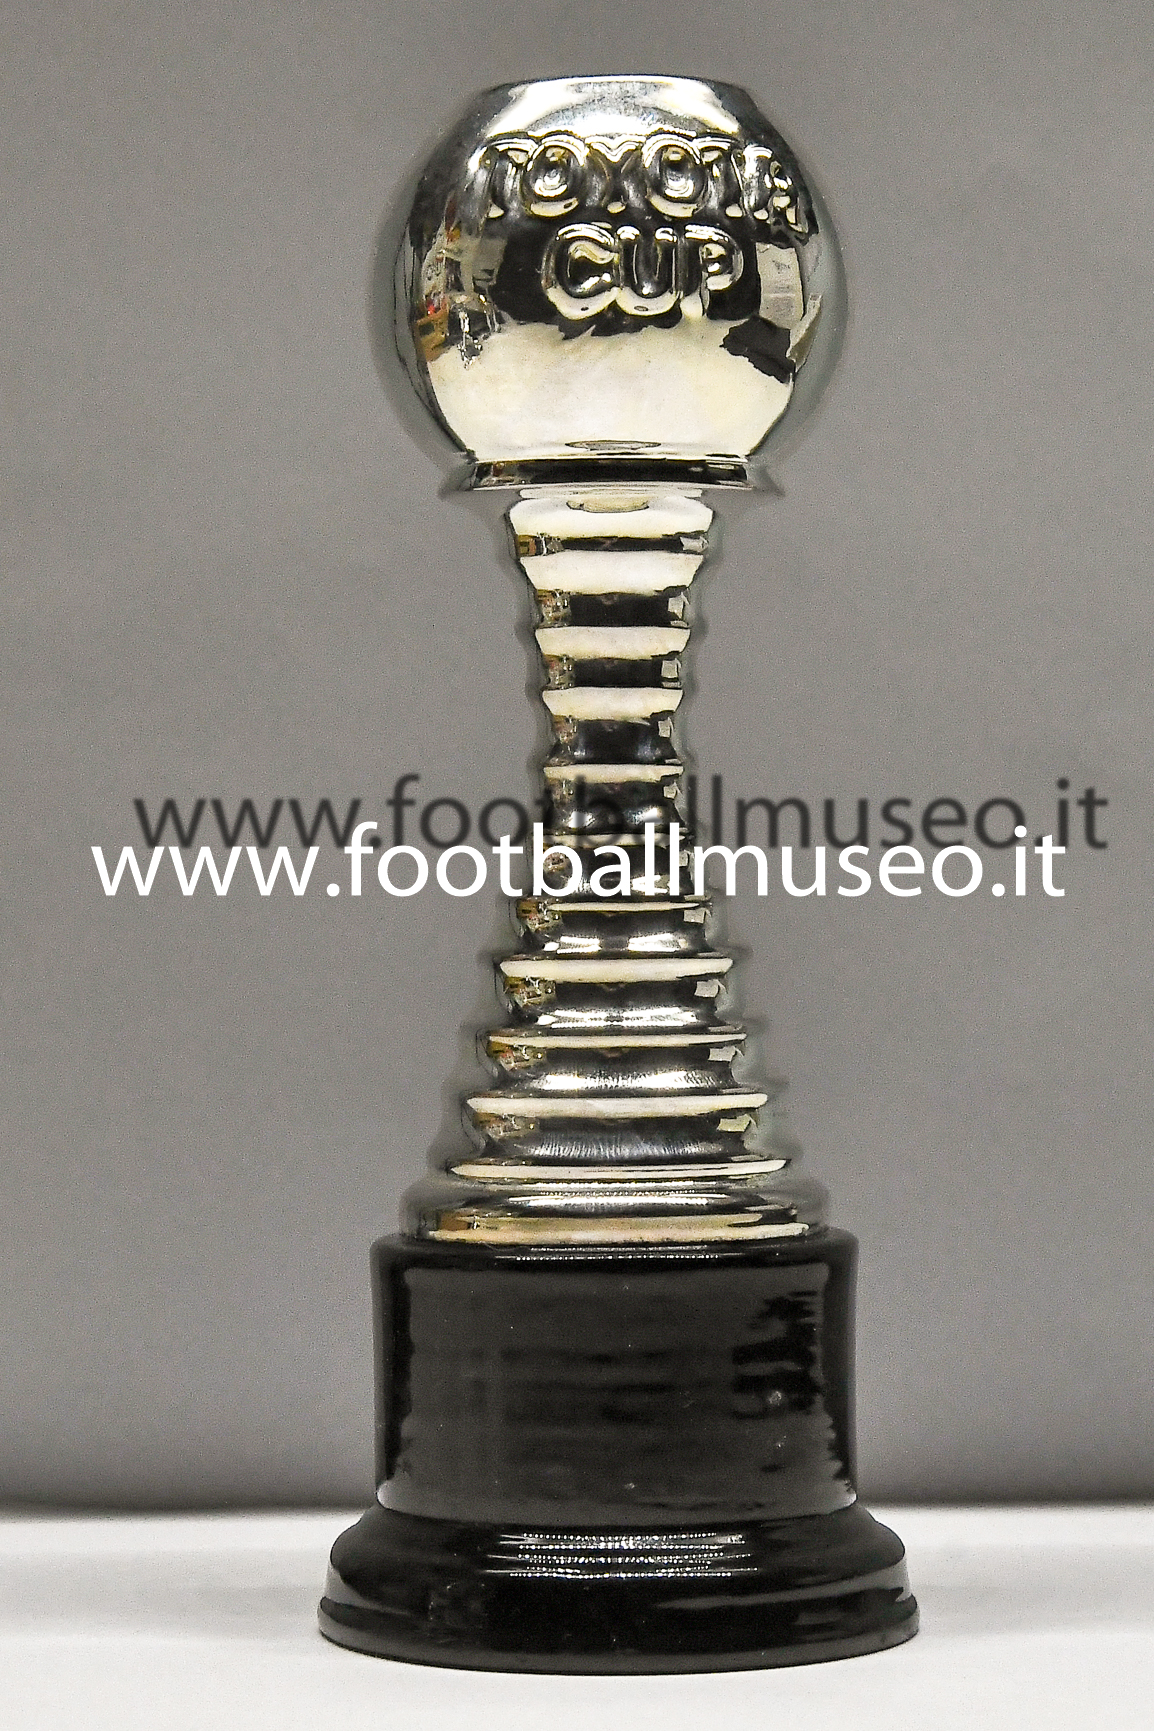 TOYOTA CUP TROPHY 1:3